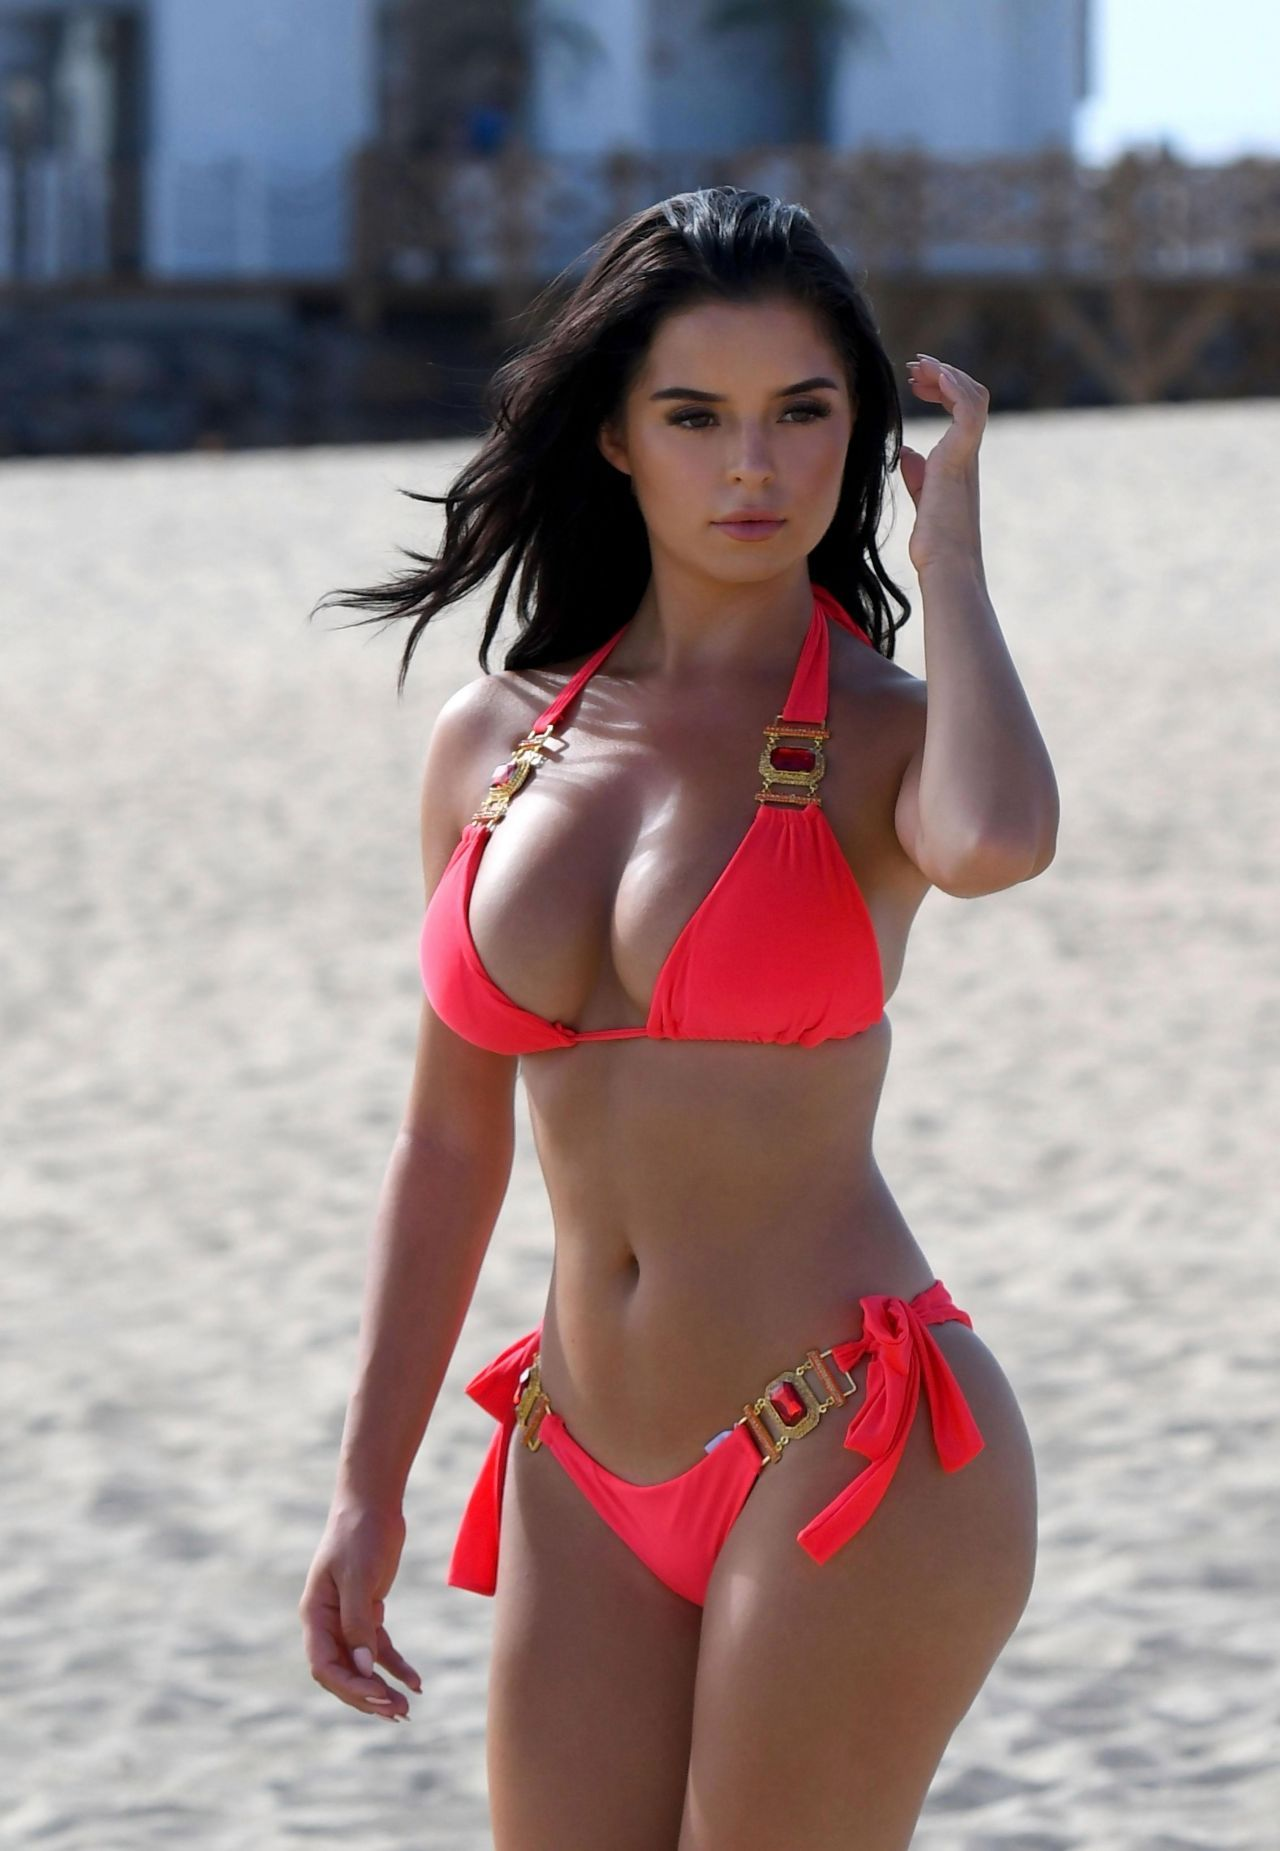 Youtube Demi Rose Mawby nude (43 photo), Topless, Leaked, Instagram, cameltoe 2006